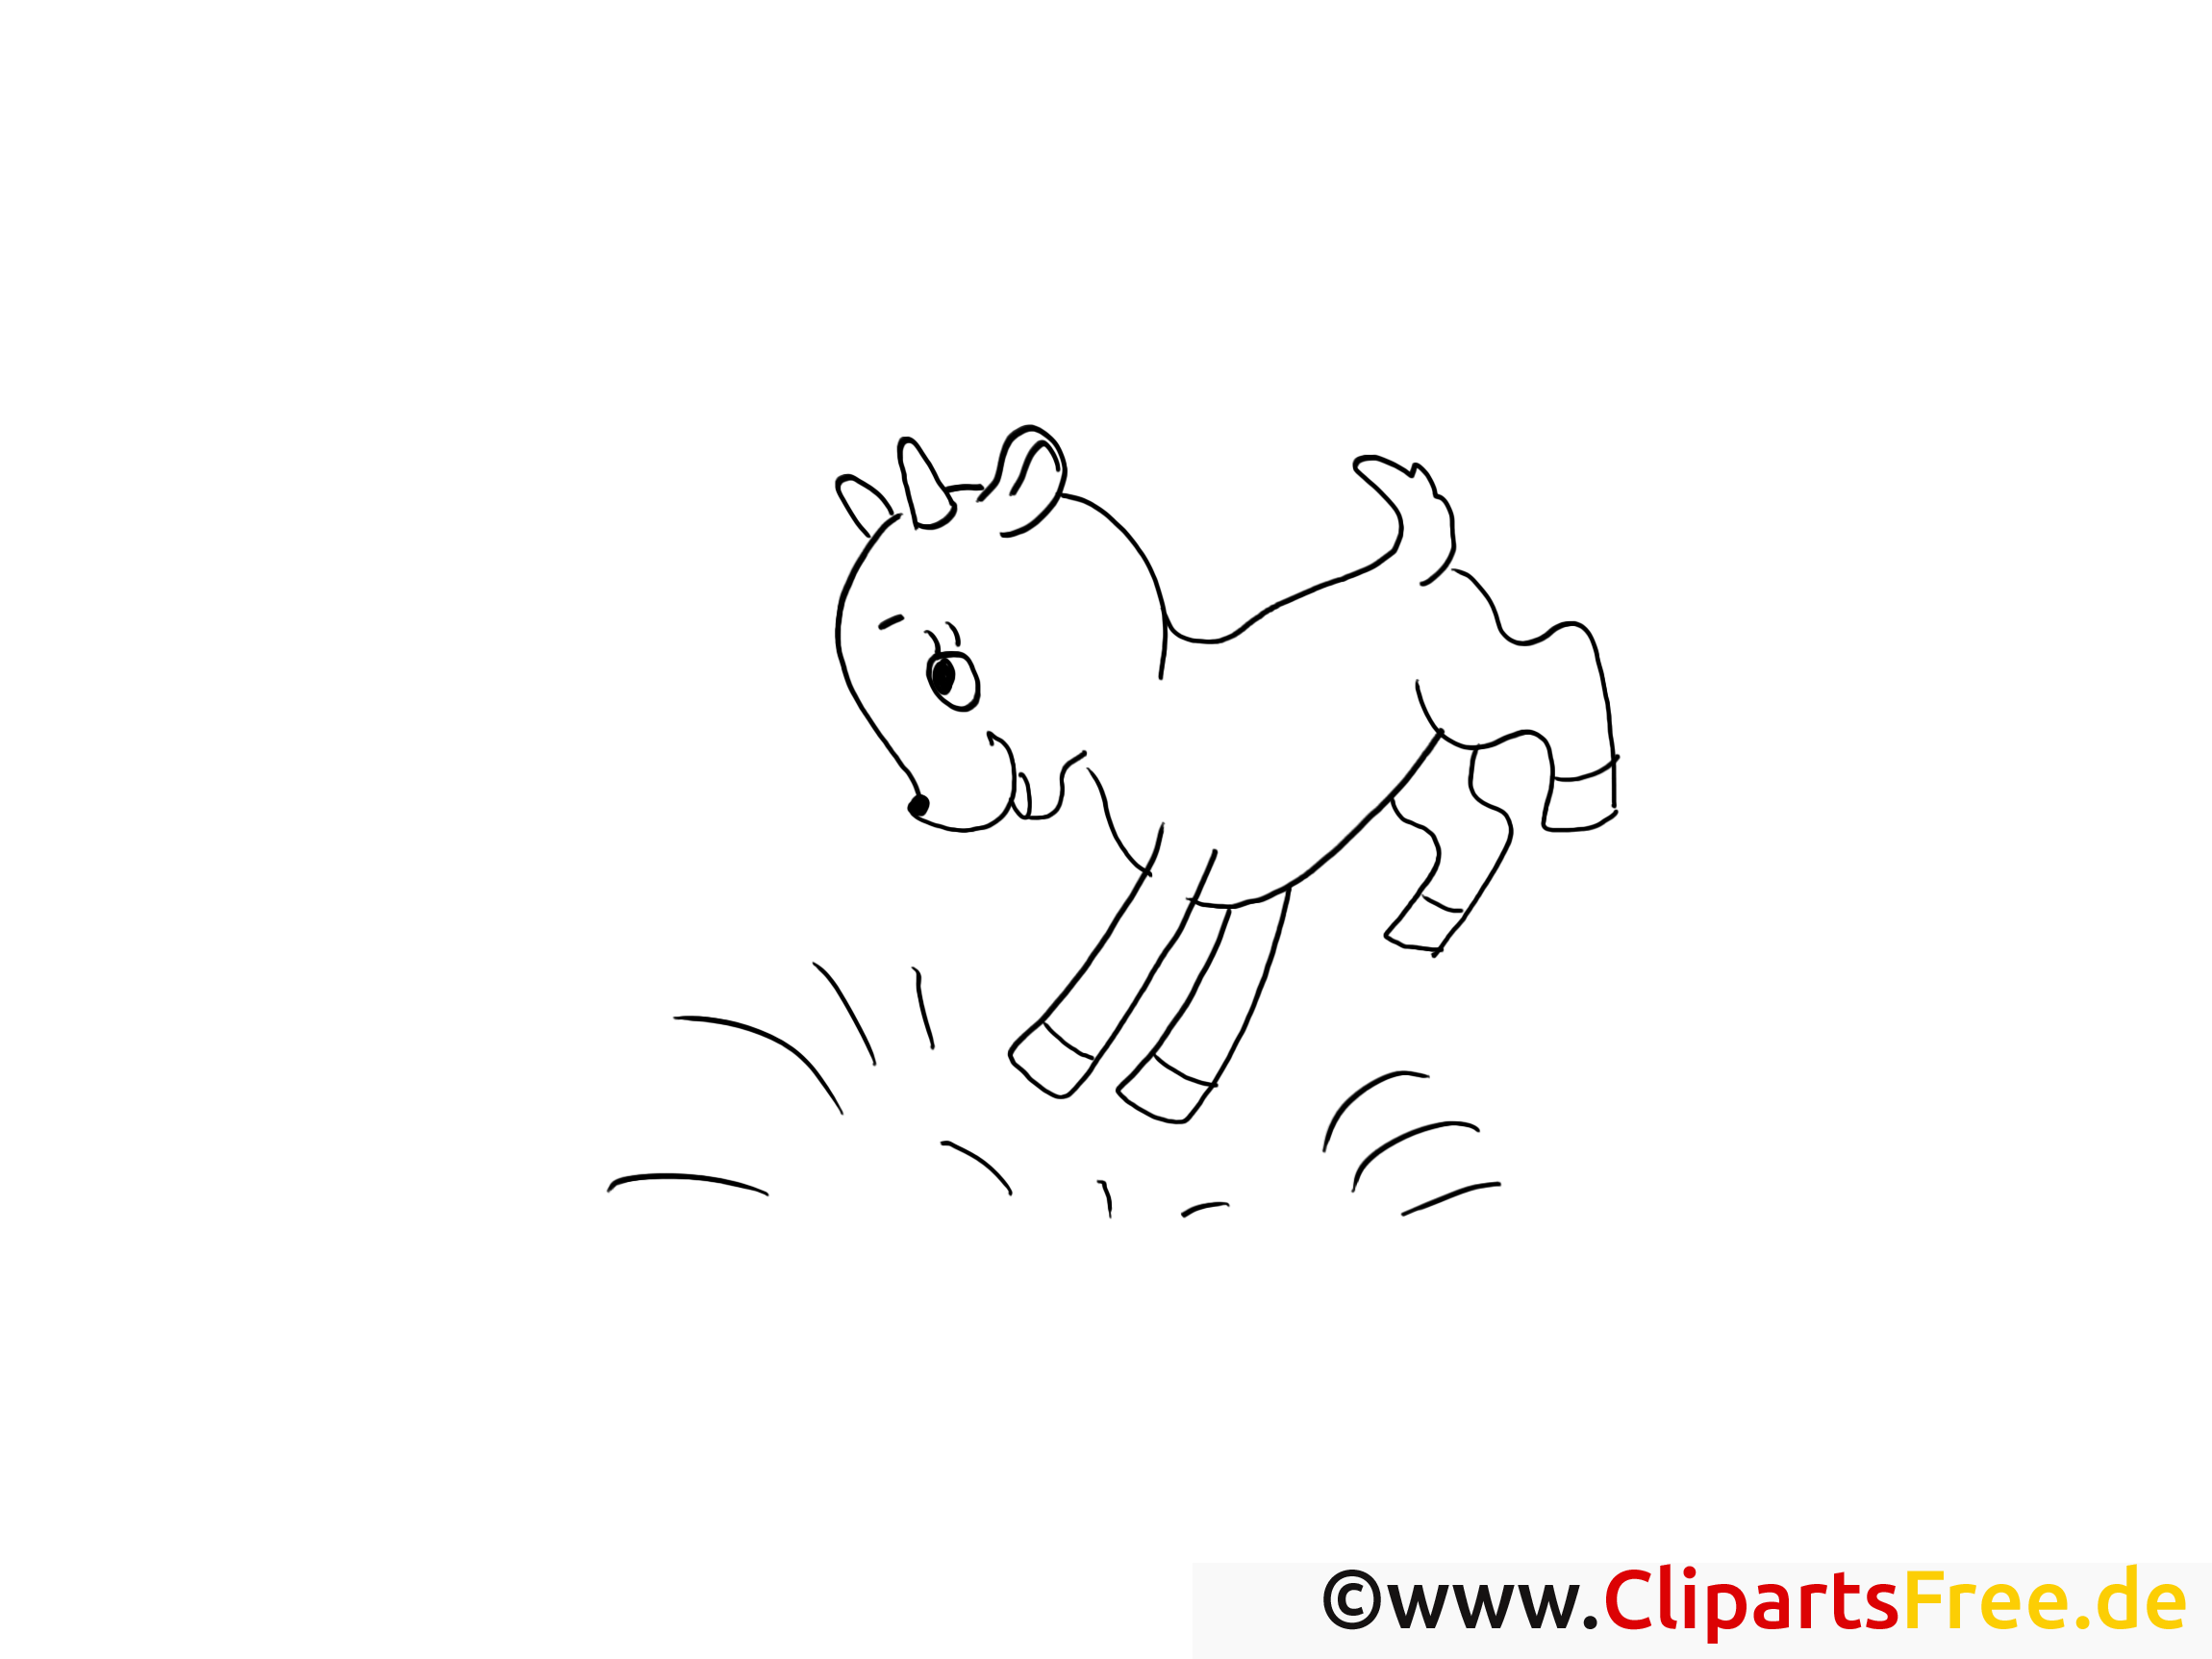 Clipart chevreau – Campagne dessins à colorier